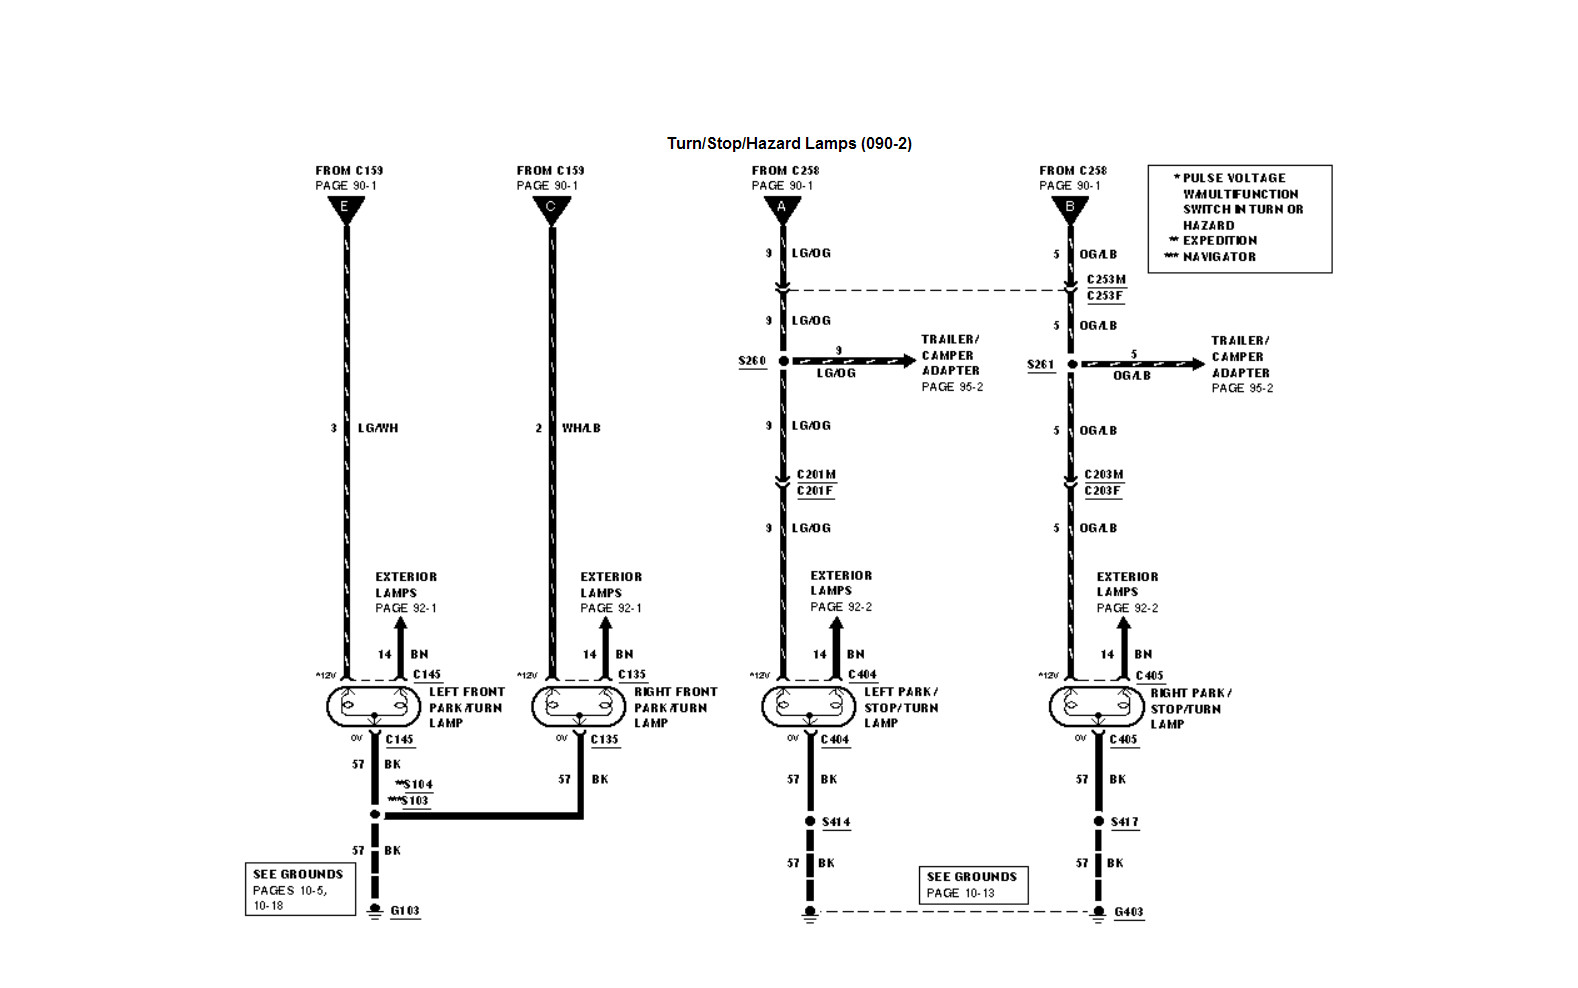 2008 lincoln navigator wiring diagram - wiring diagram tags step-terms -  step-terms.discoveriran.it  discoveriran.it